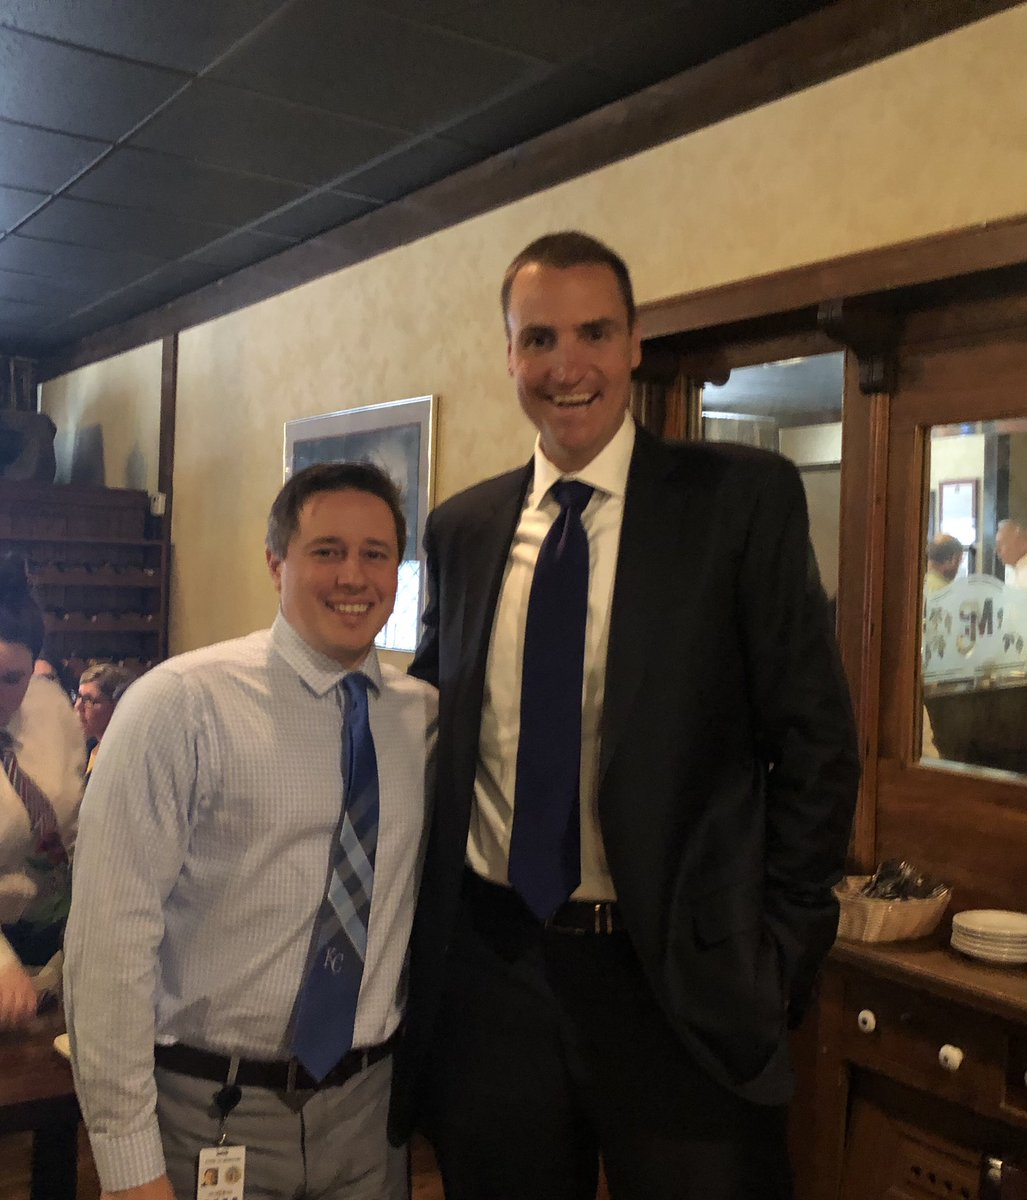 Sometimes in life you know something intellectually but it doesn't really sink in until you are faced with it physically. Today I learned I am WAY shorter than @Royals World Series Champion Chris Young. #AlwaysRoyal  <br>http://pic.twitter.com/GKfHnB0t8r